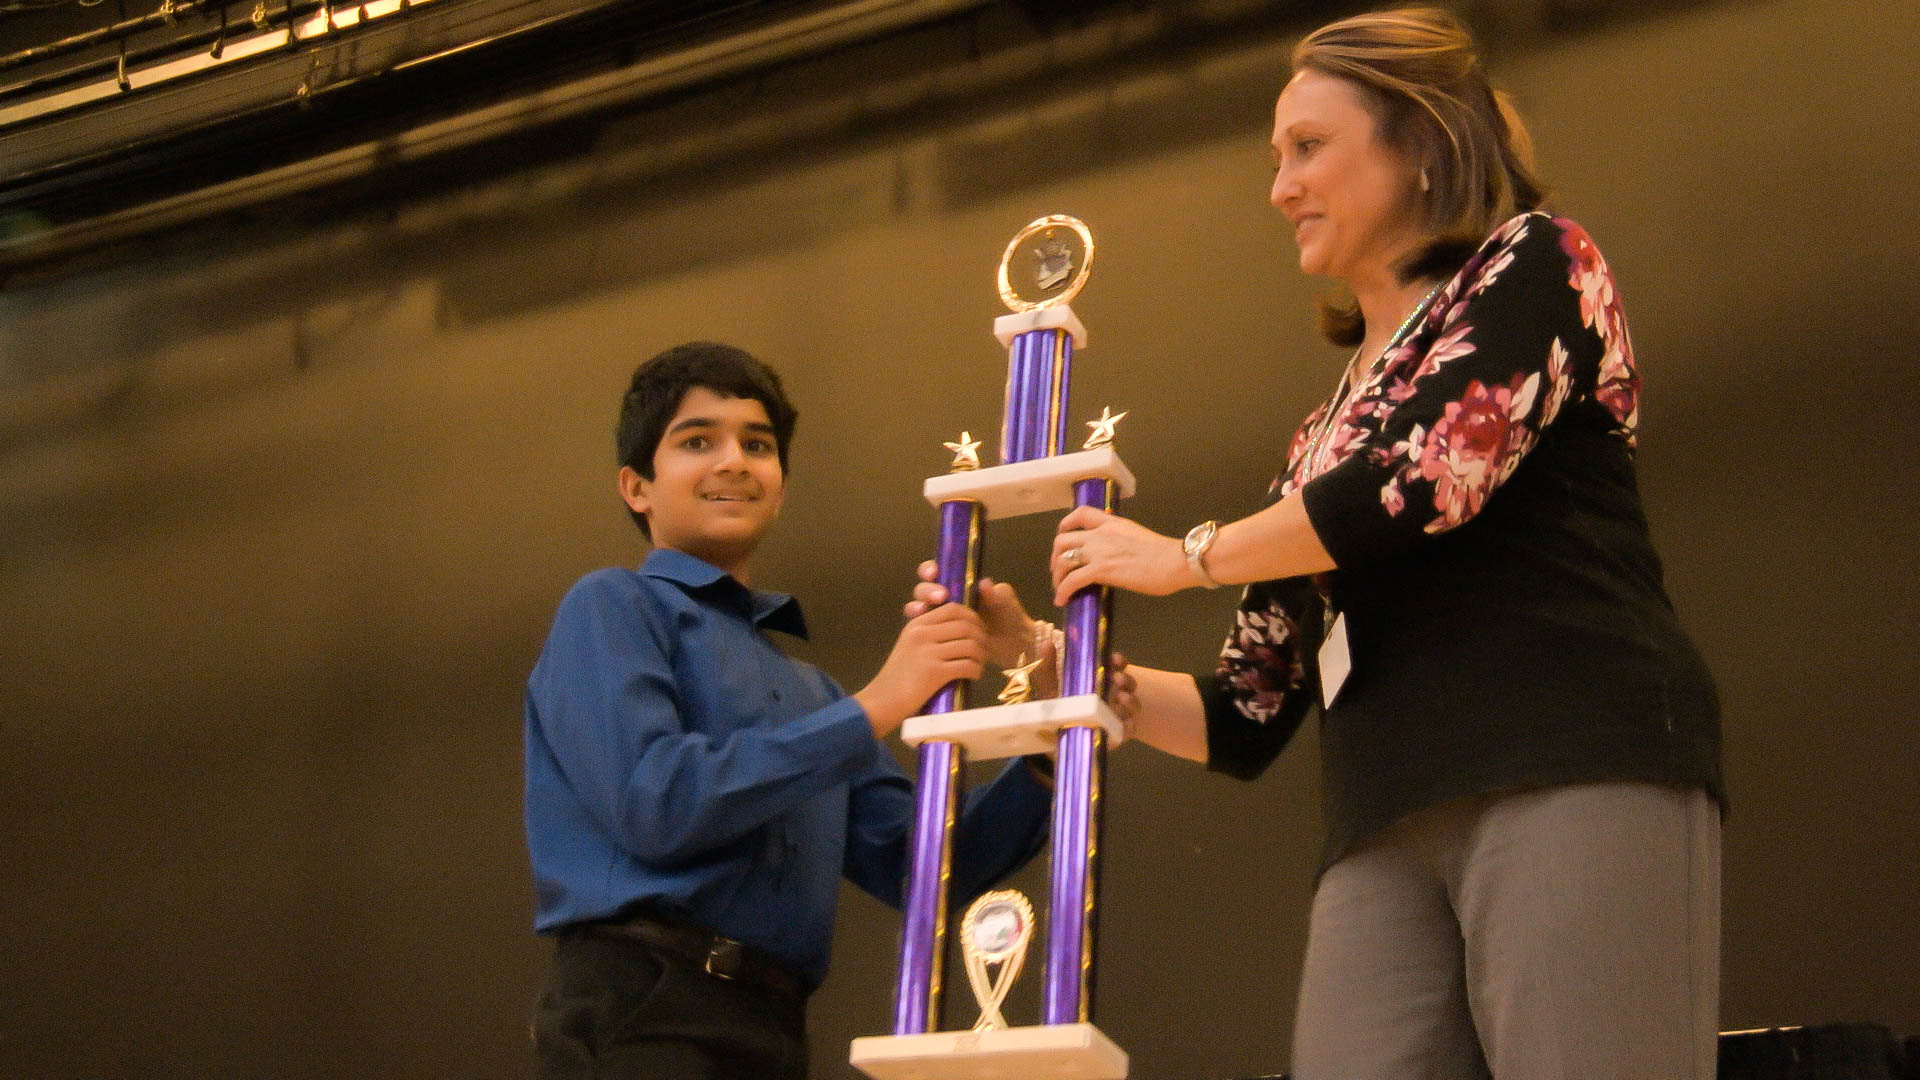 Harshal Bharatia, Wilson Middle School with trophy